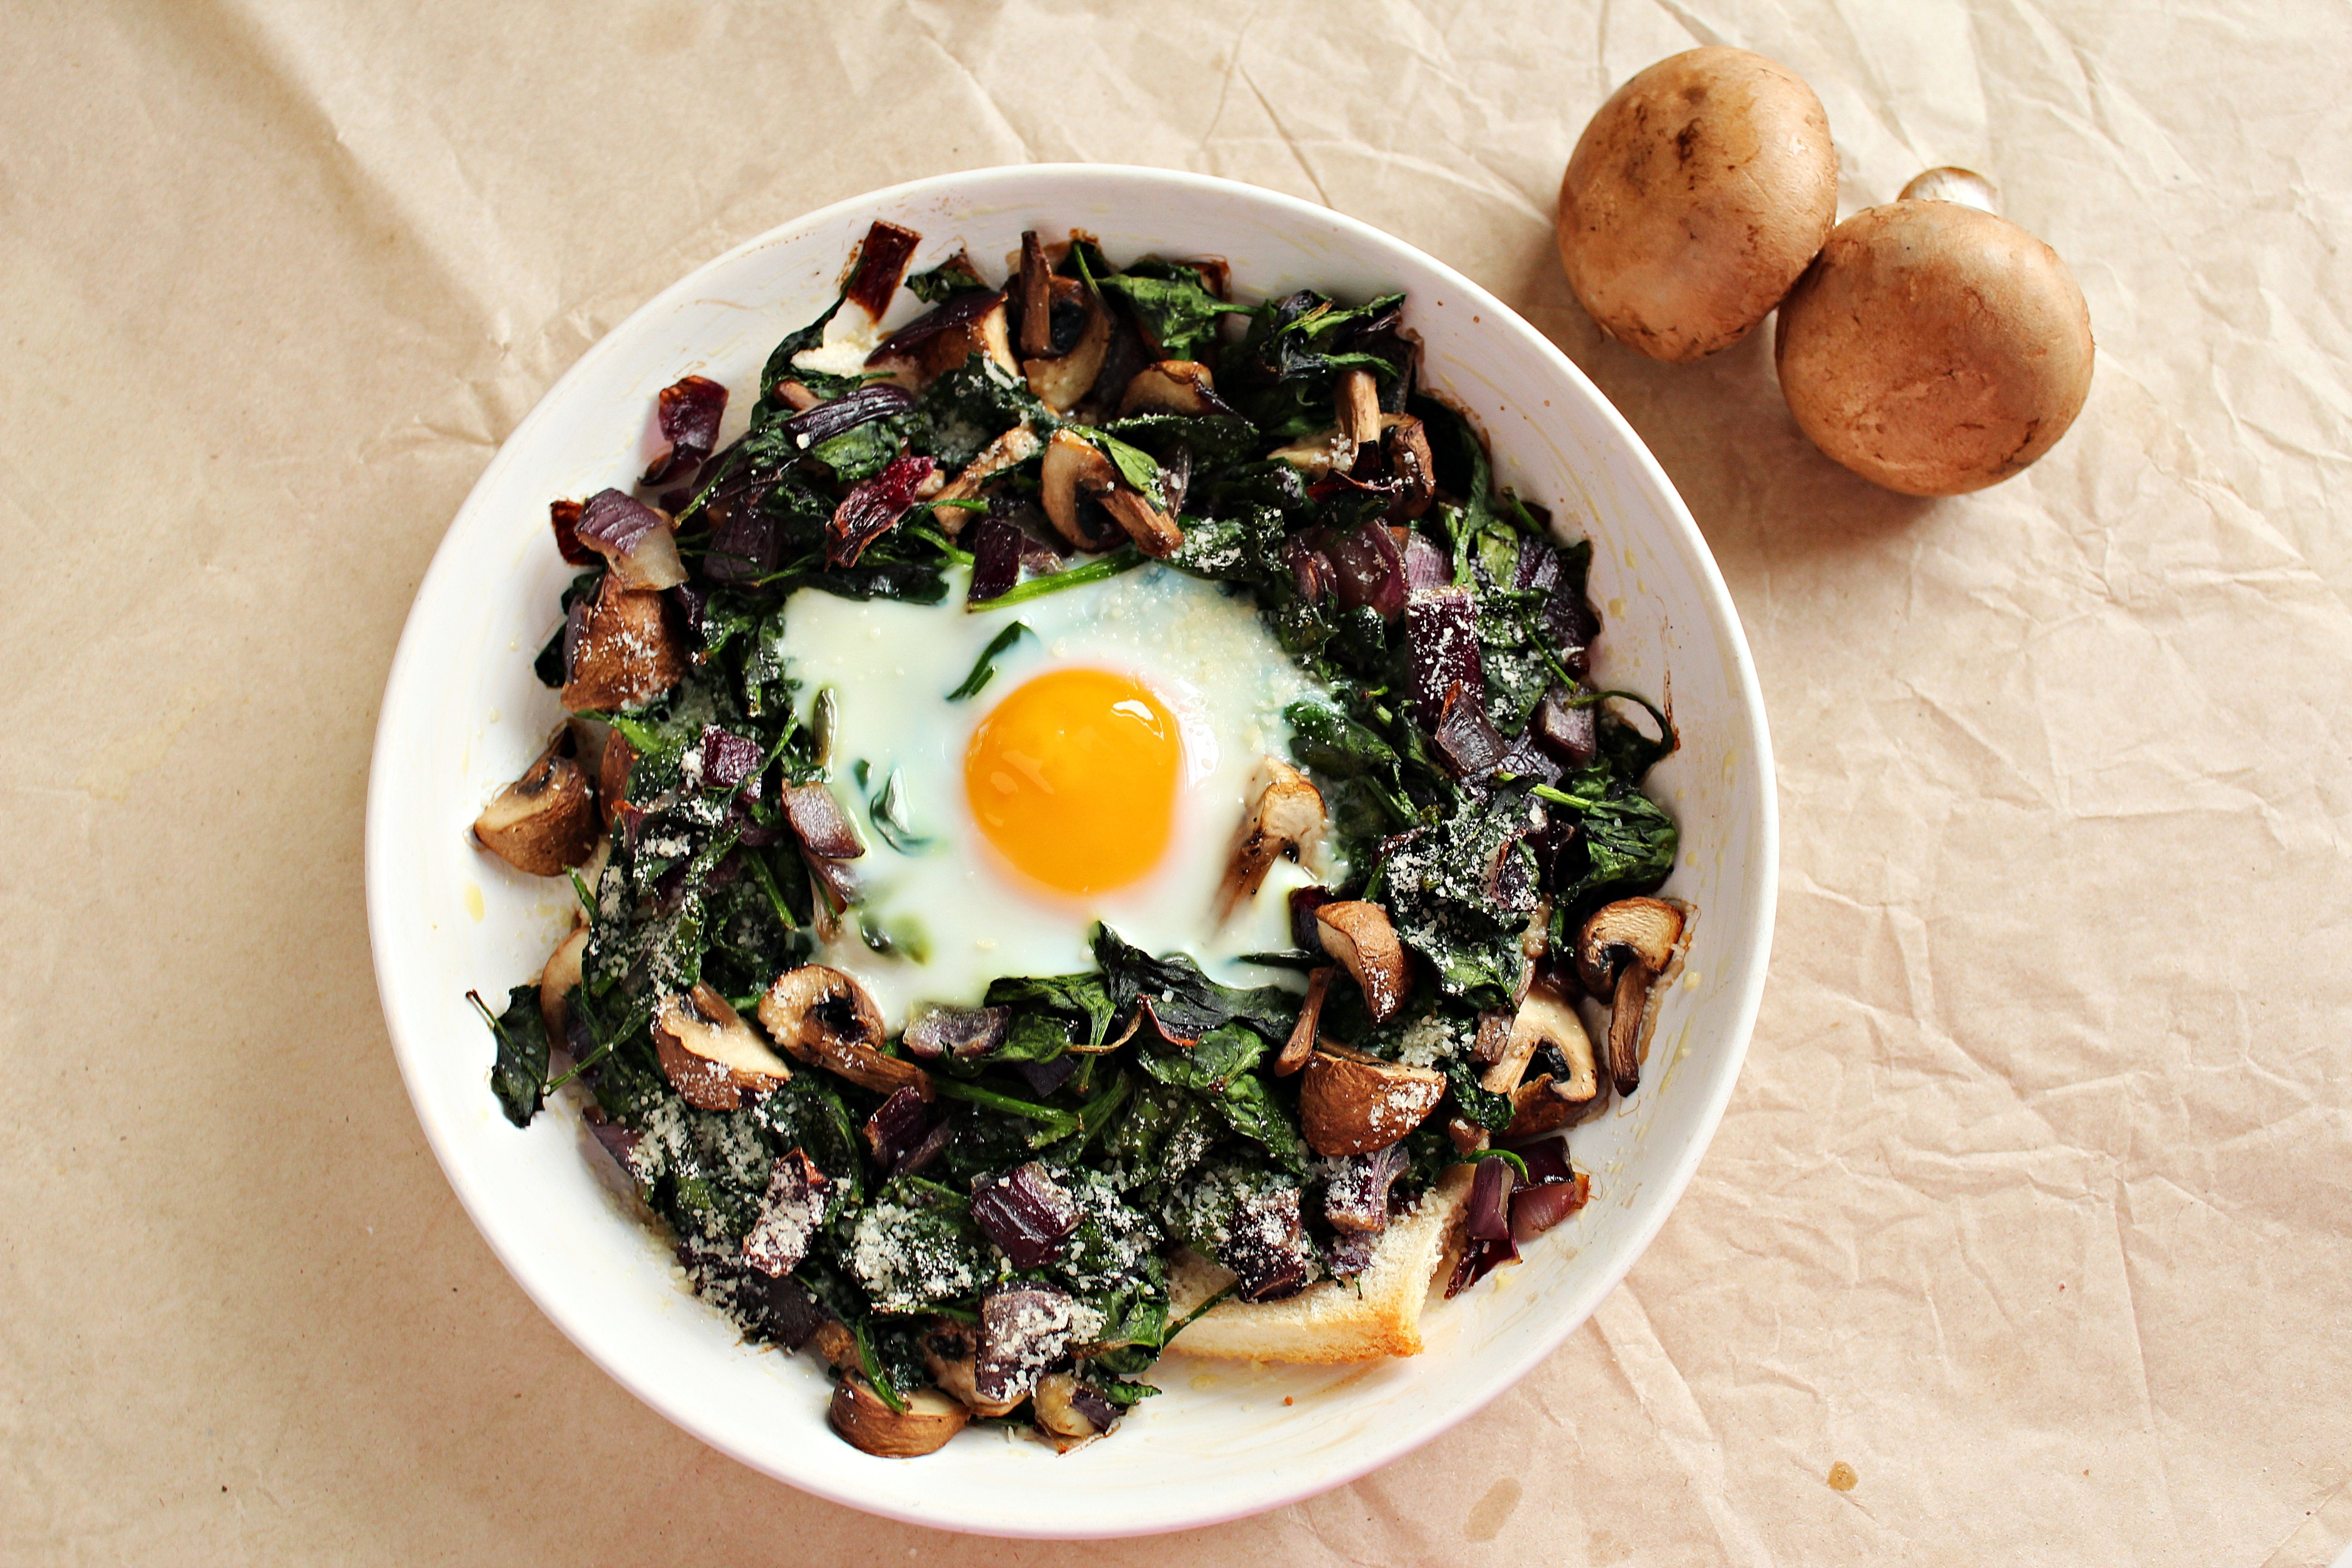 Baked Egg with Mushrooms and Spinach